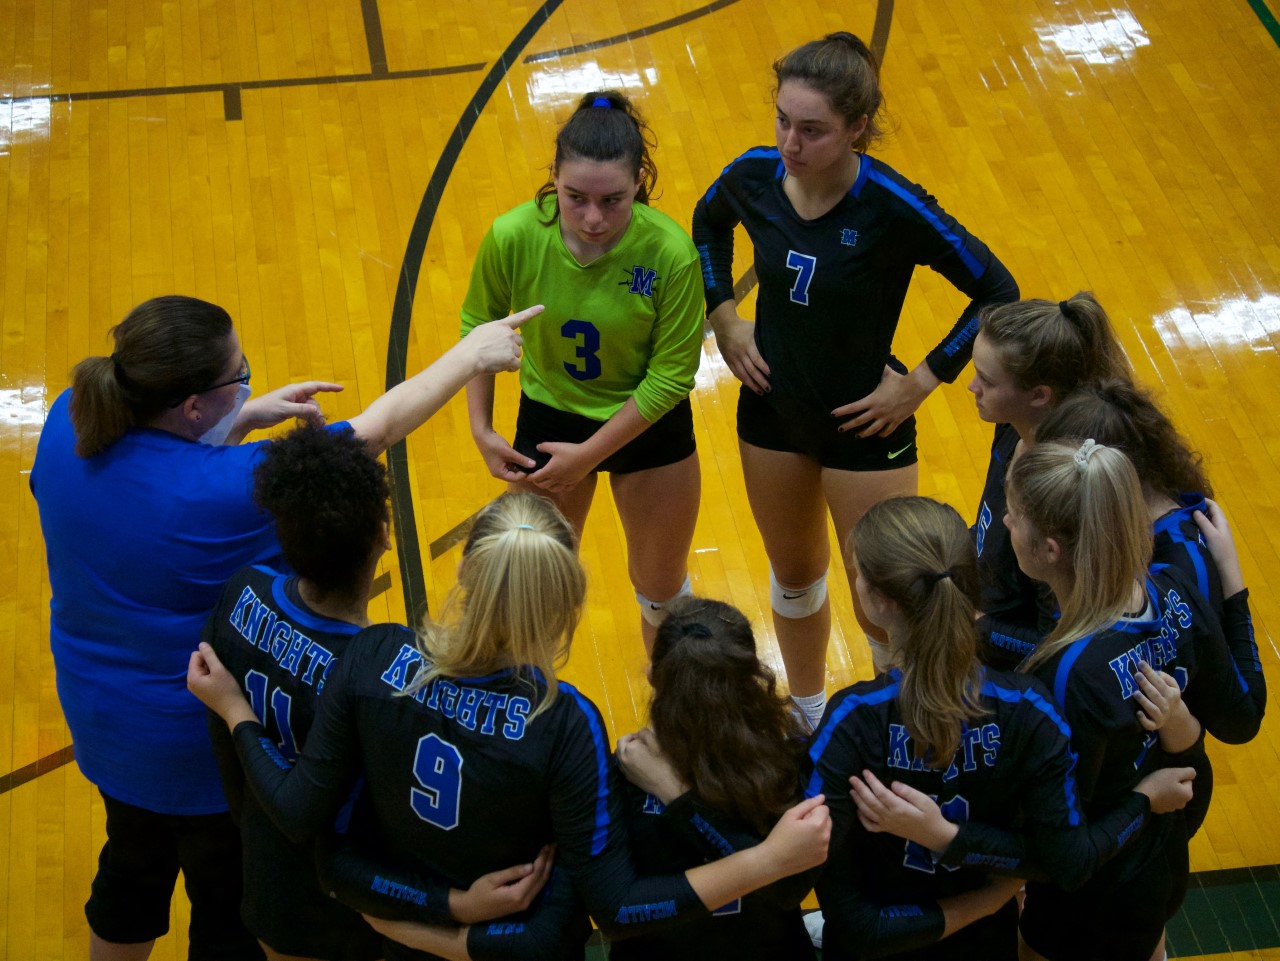 Head coach Amy Brodbeck instructs her team during a break in the action against arch-rival Anderson.  The Knights played the Trojans tough, but lost in two tightly contested sets, 25-23, 25-23.